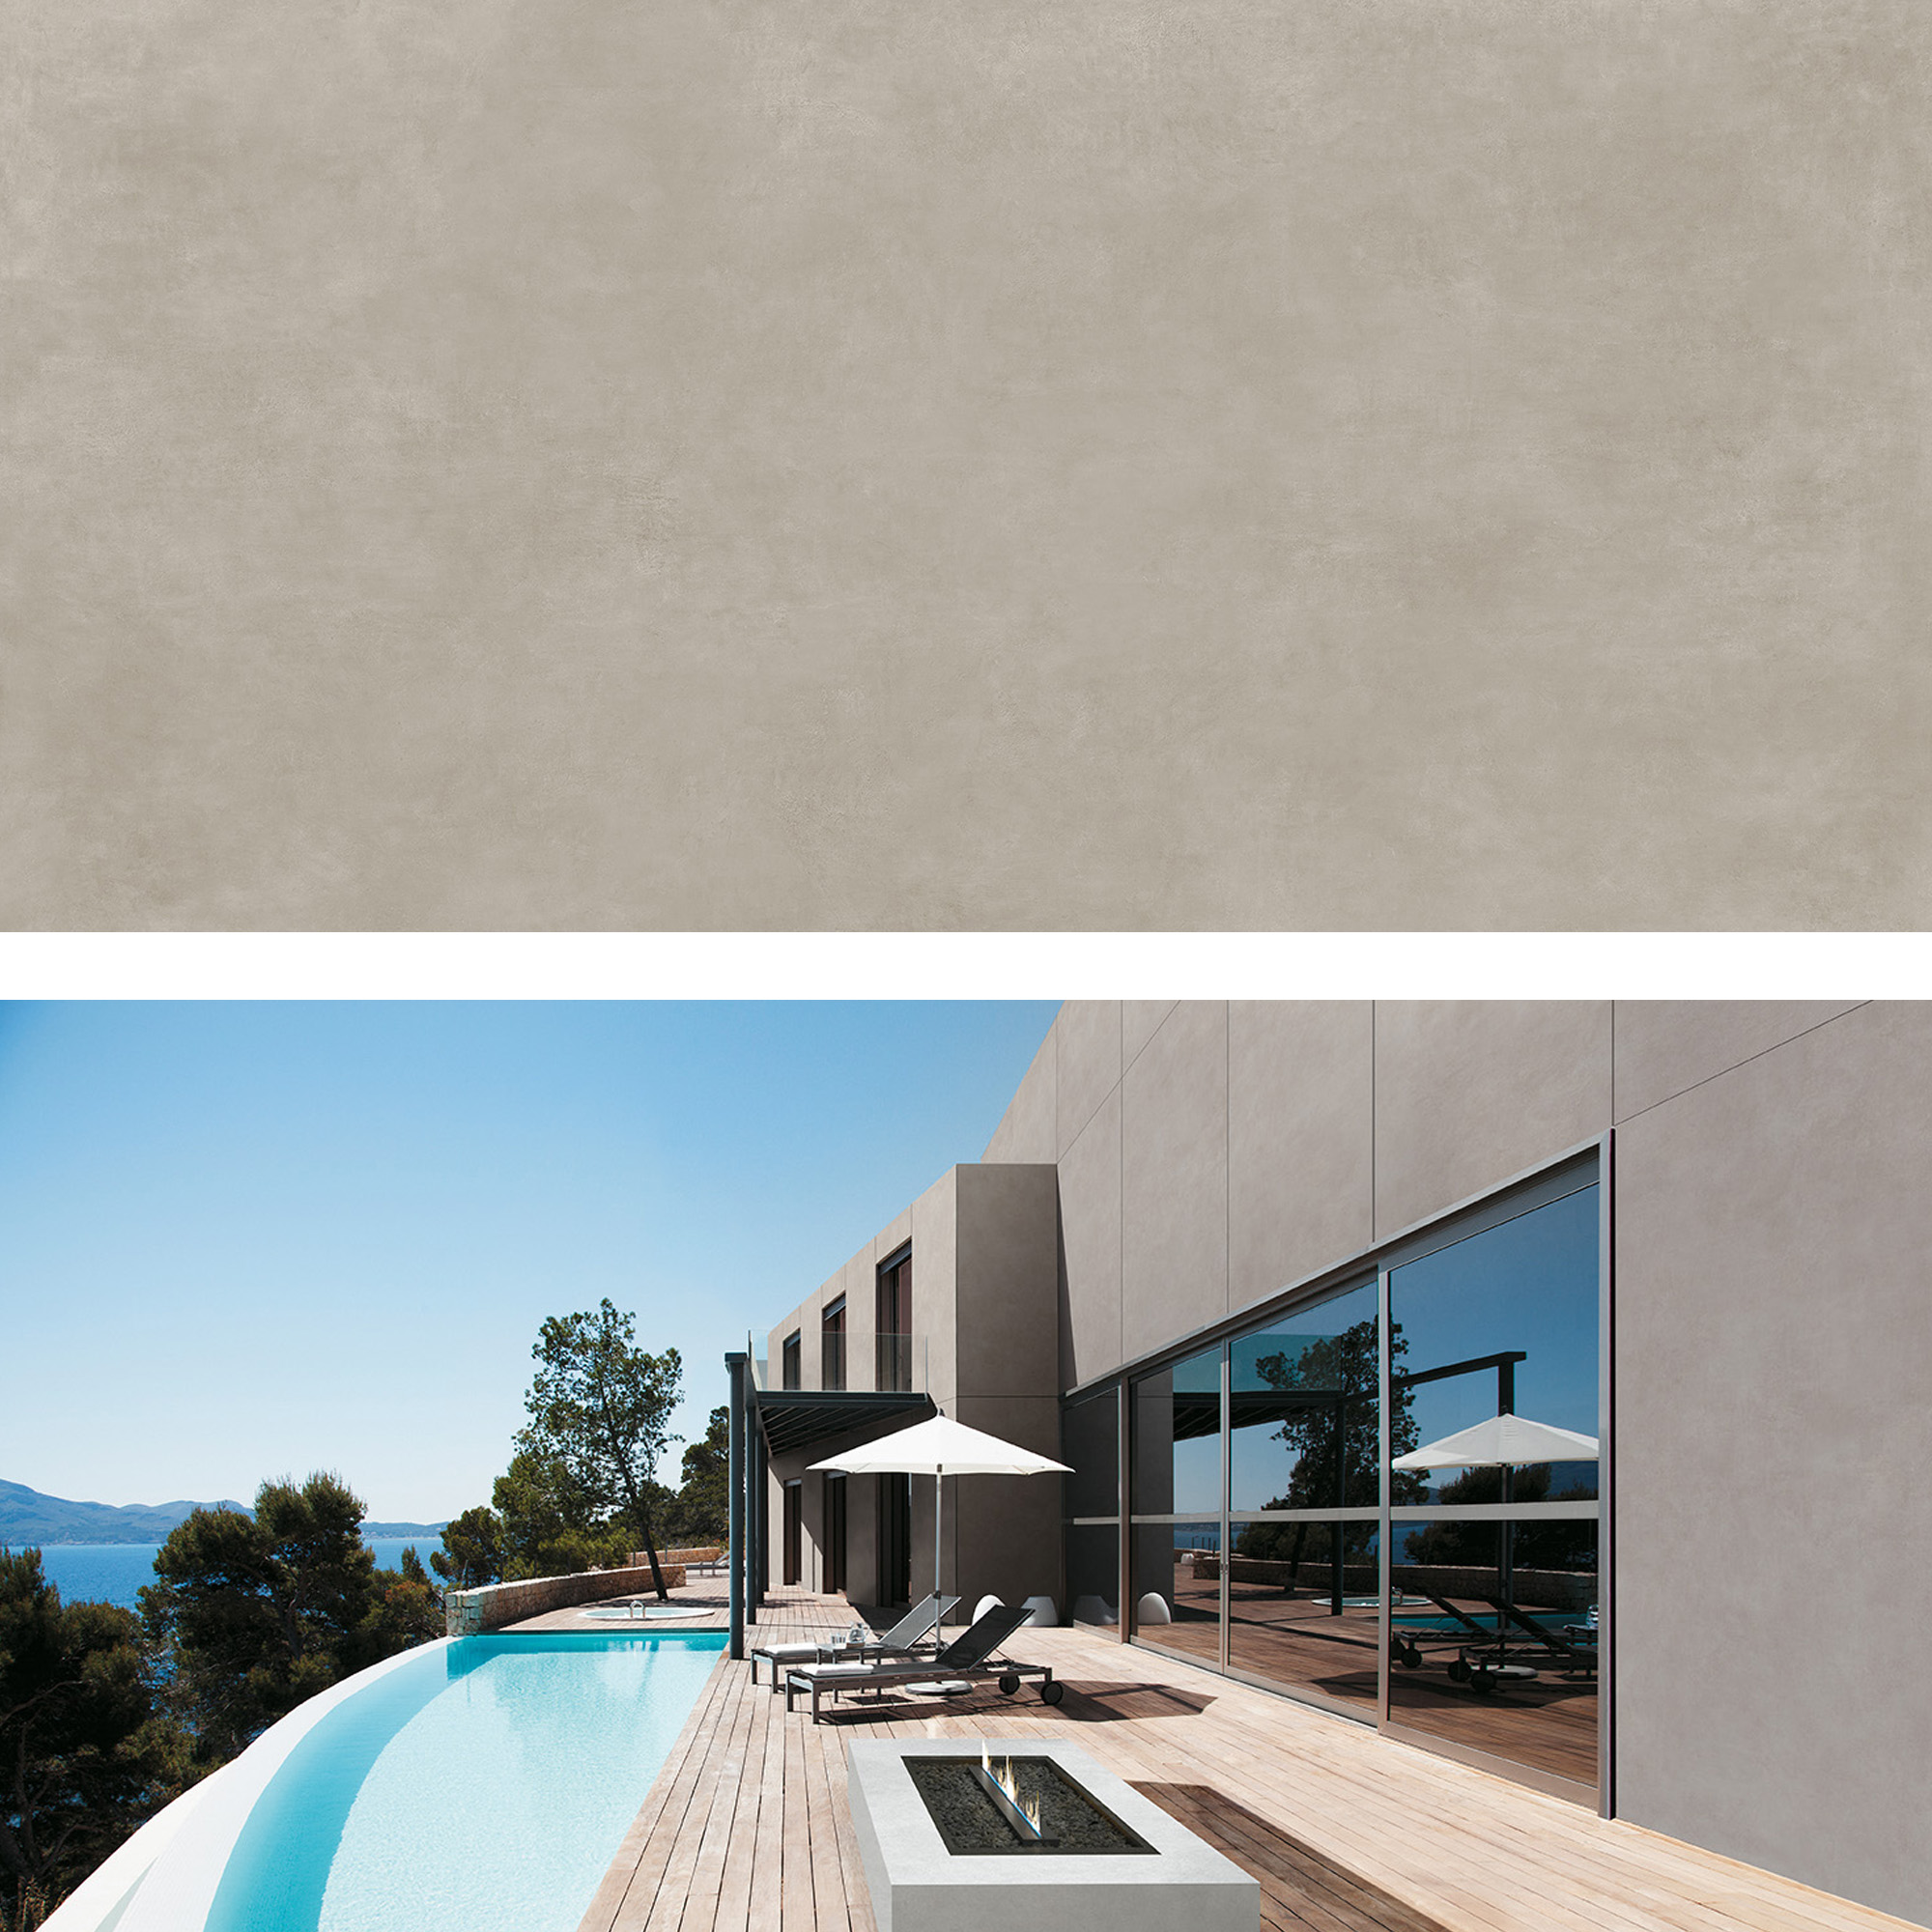 Porcelain Outdoor Colorstone remodeling